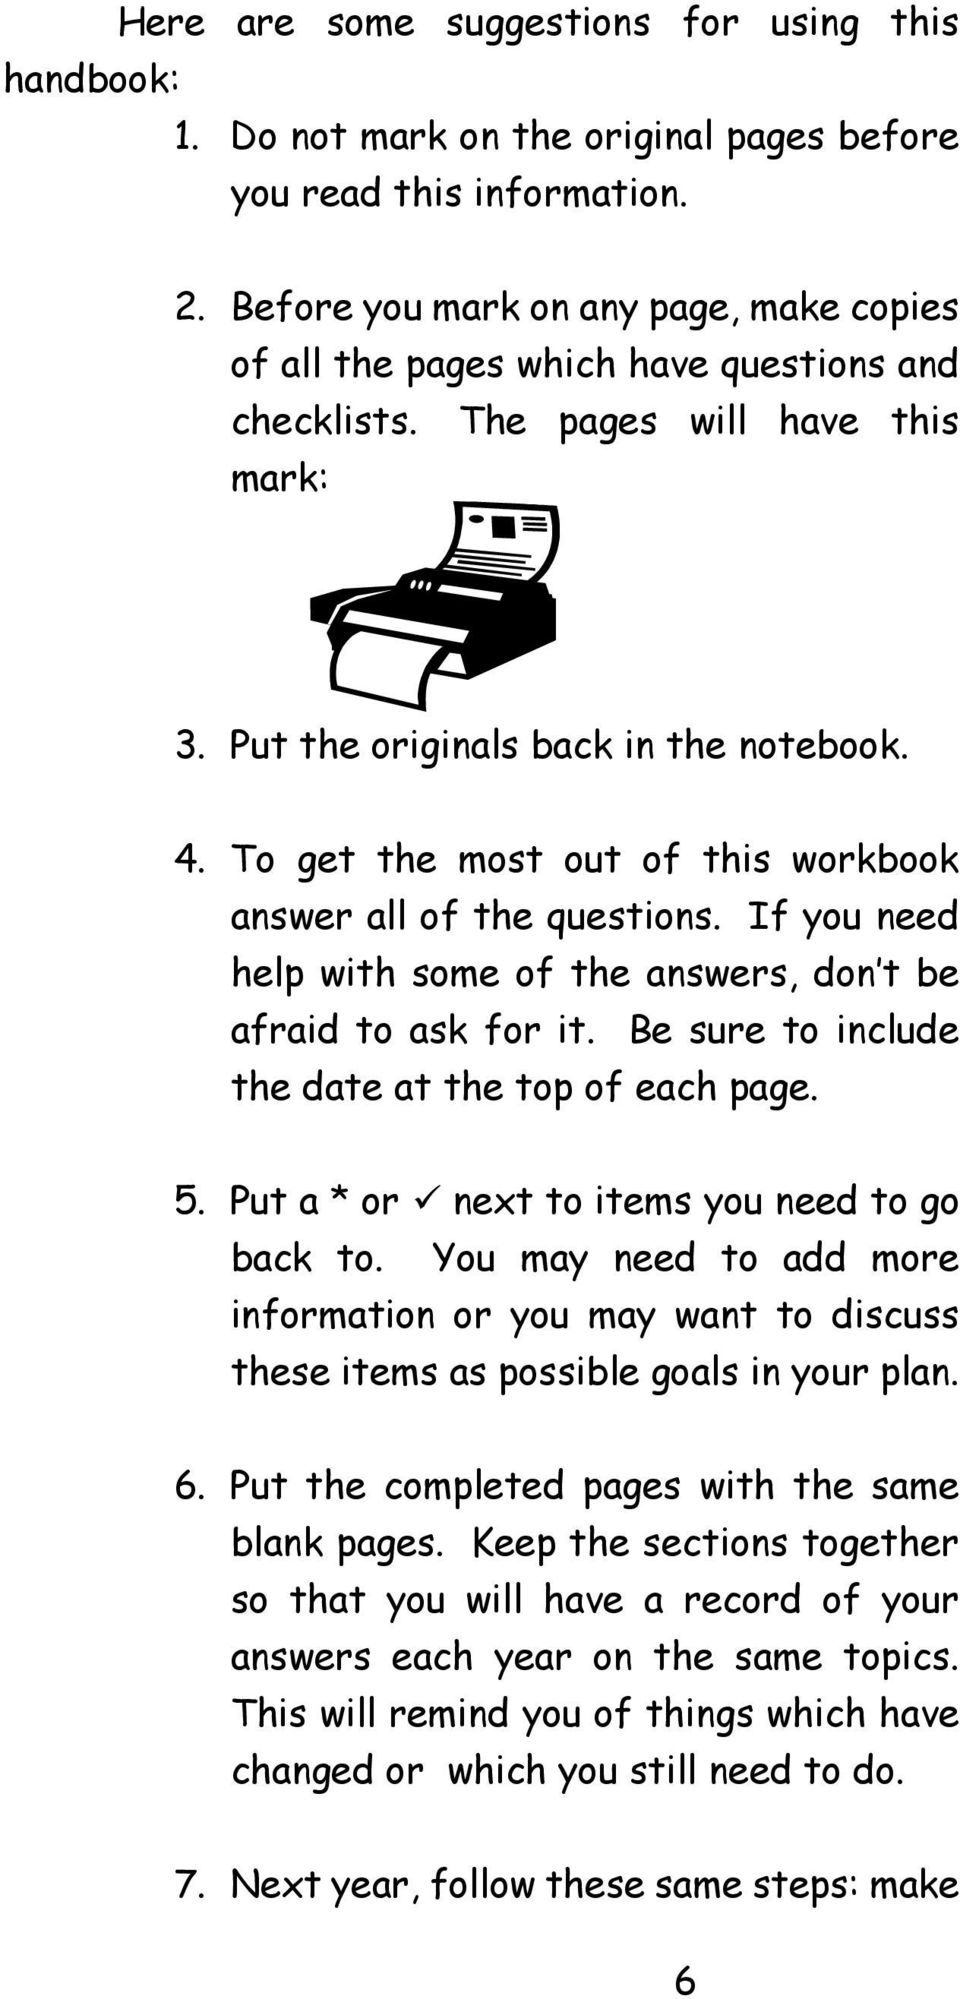 To get the most out of this workbook answer all of the questions. If you need help with some of the answers, don t be afraid to ask for it. Be sure to include the date at the top of each page. 5.